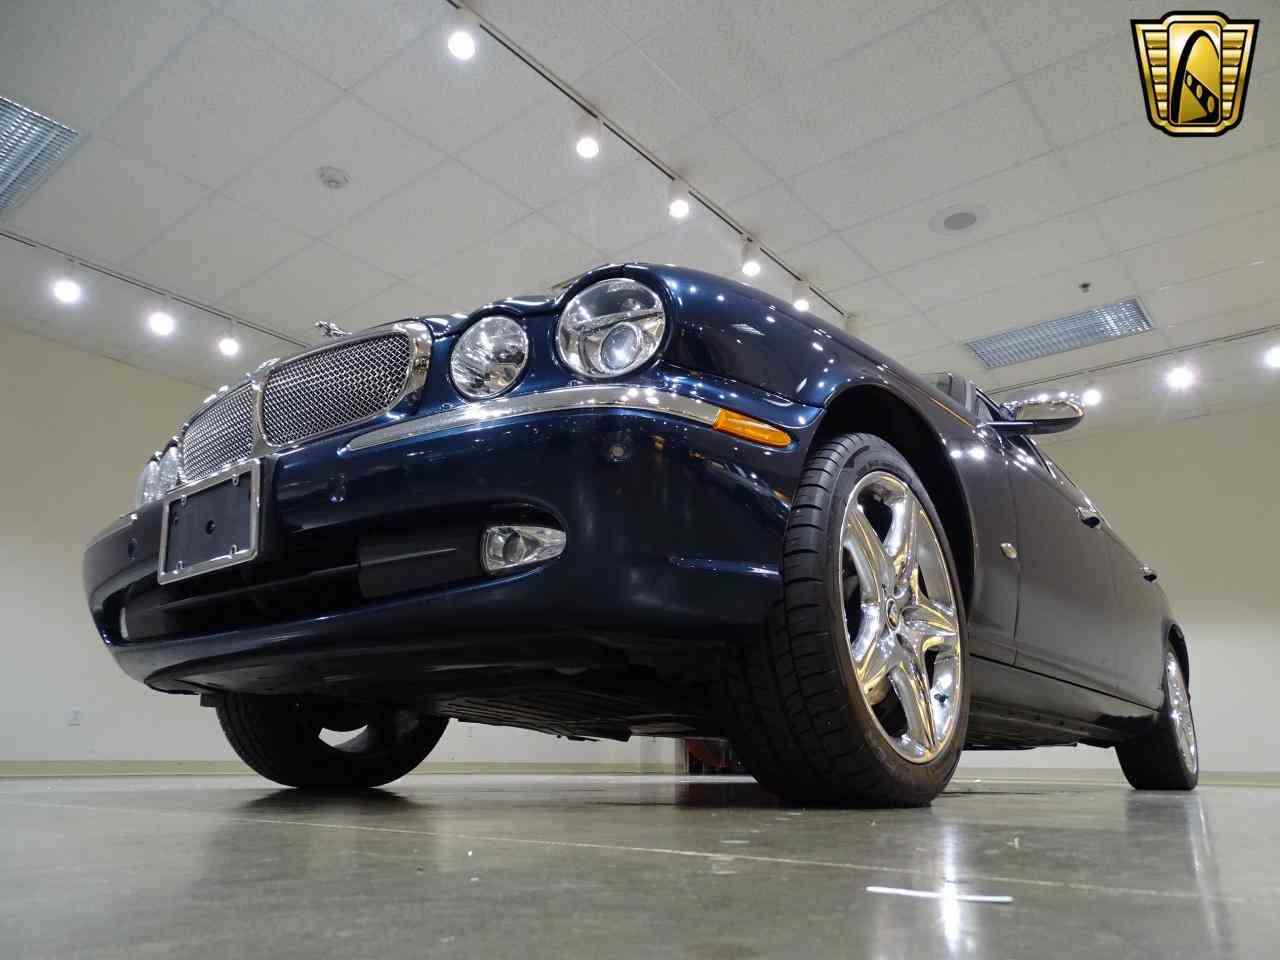 Large Picture of 2006 XJ8 located in O'Fallon Illinois - $14,995.00 Offered by Gateway Classic Cars - St. Louis - MFNT